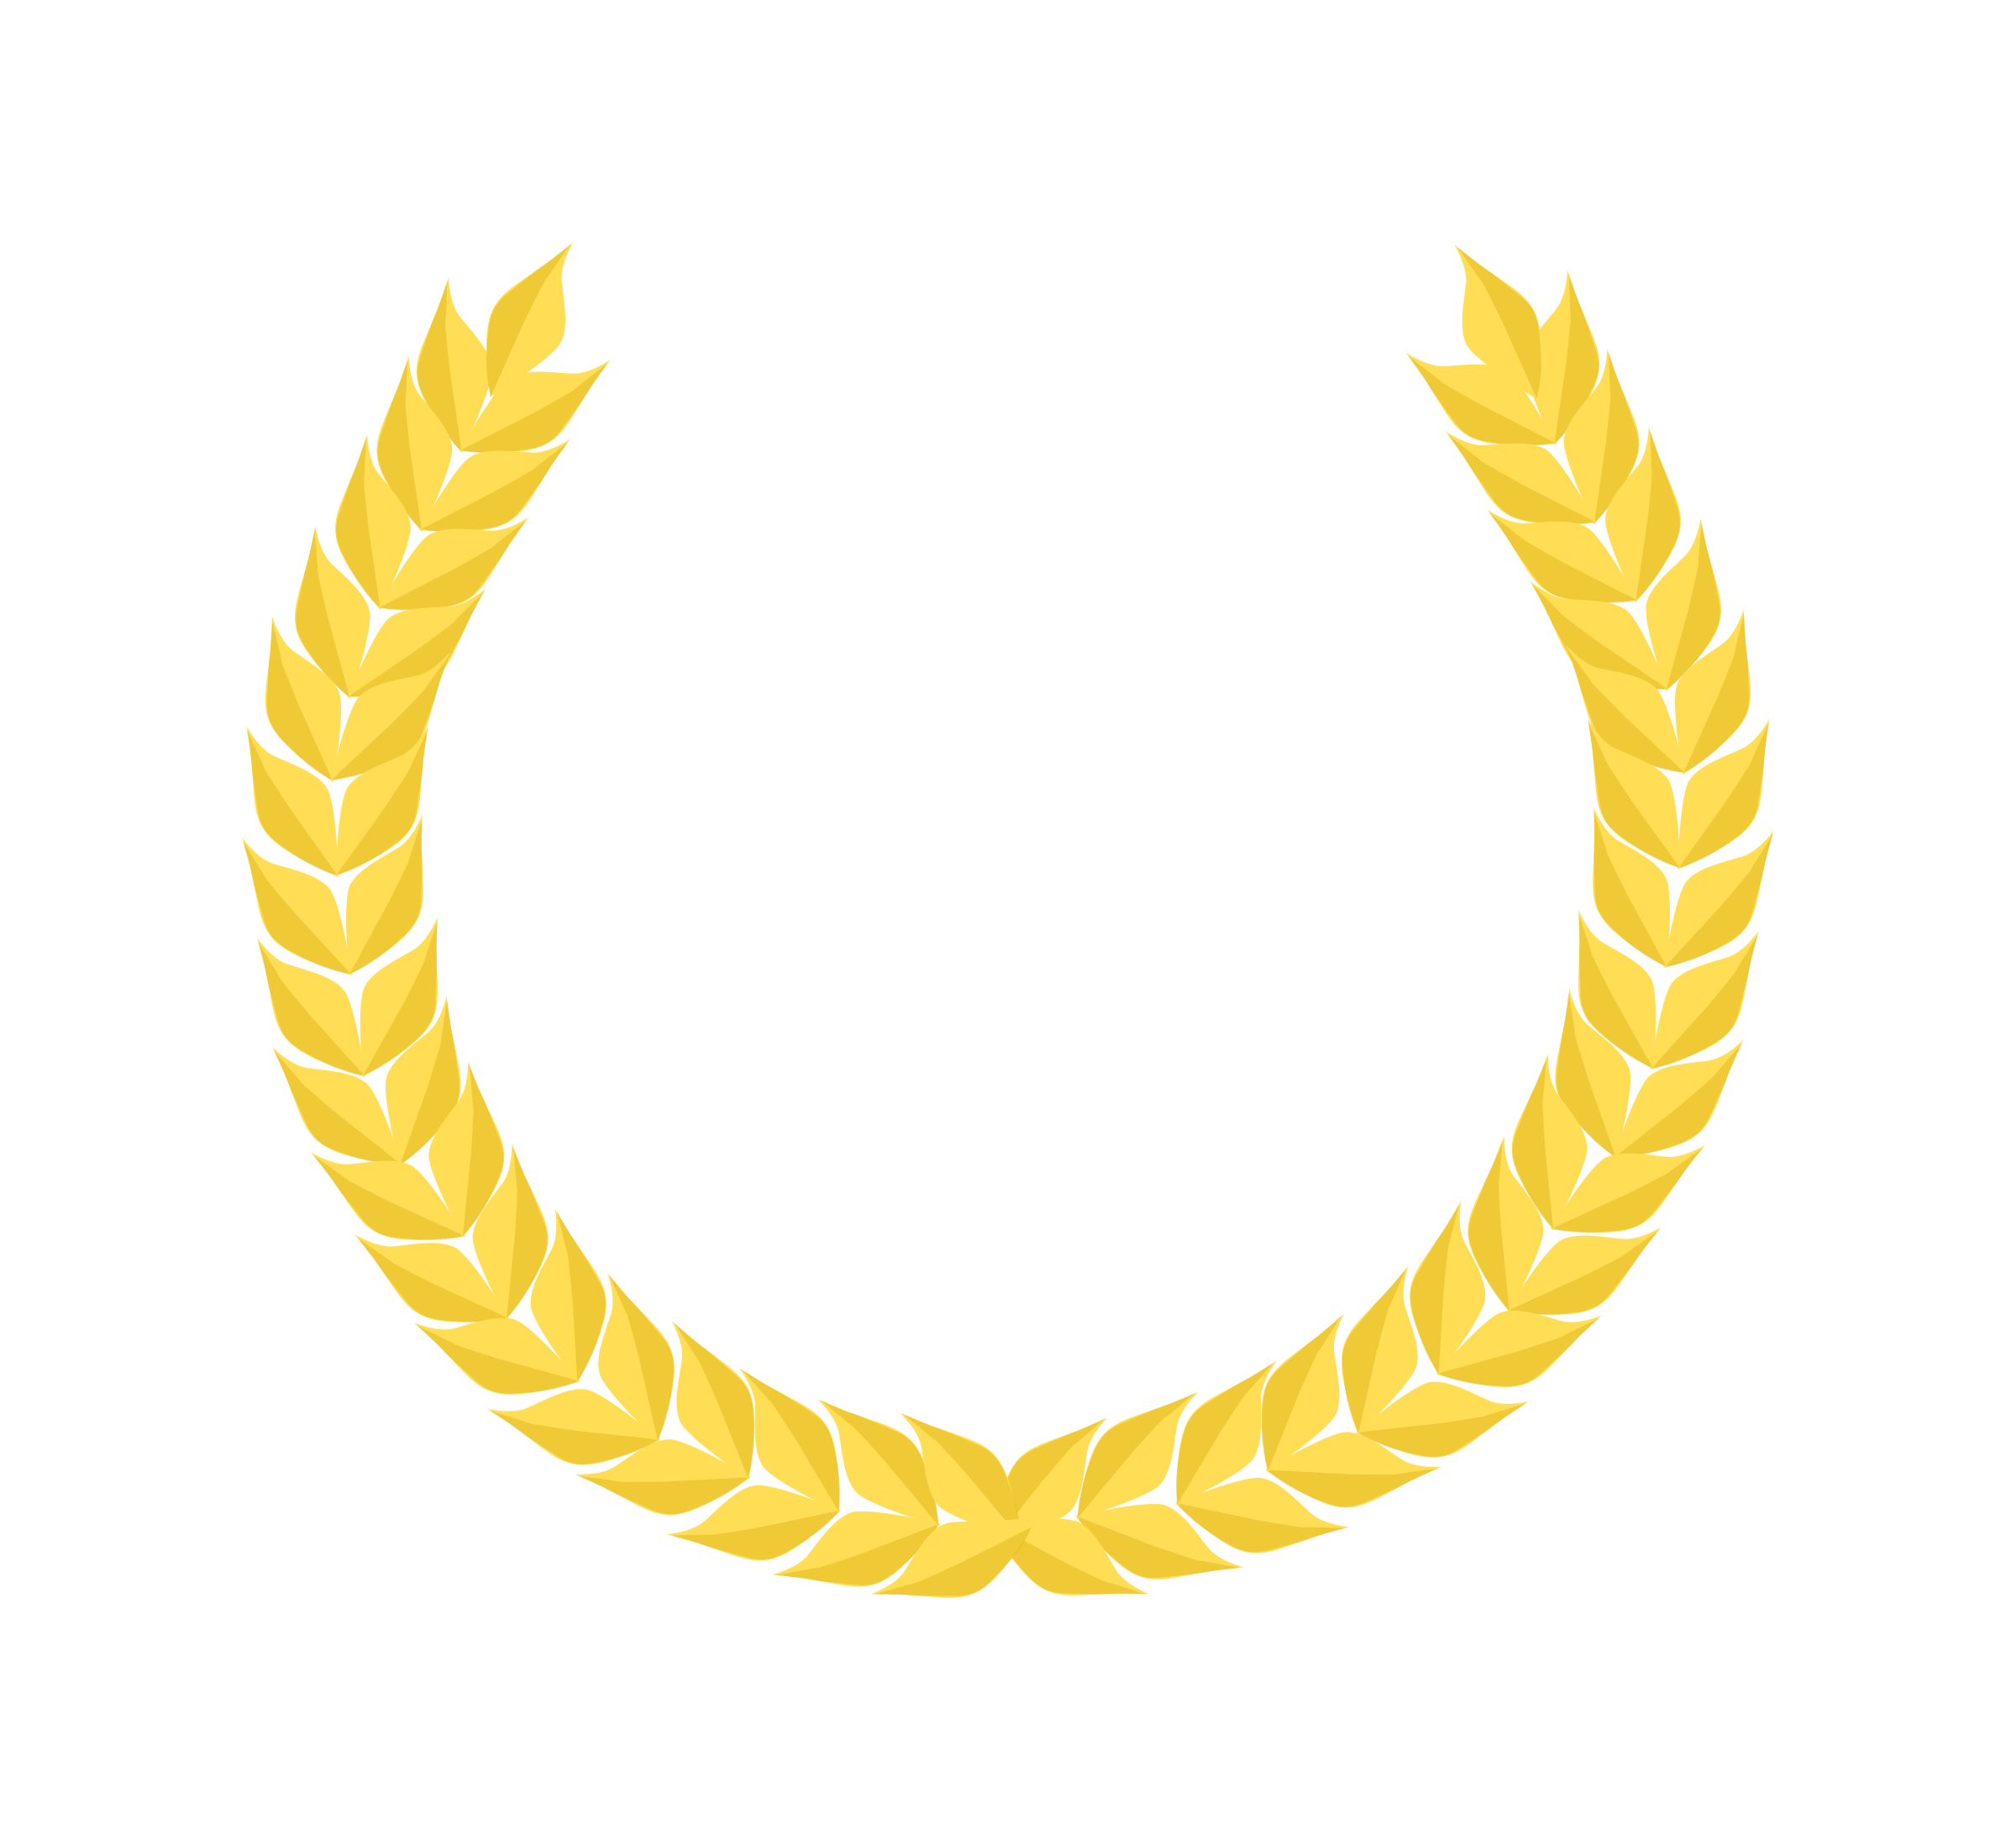 Crown of leaves rome clipart image transparent library award wreath clipart yellow - Clipground image transparent library